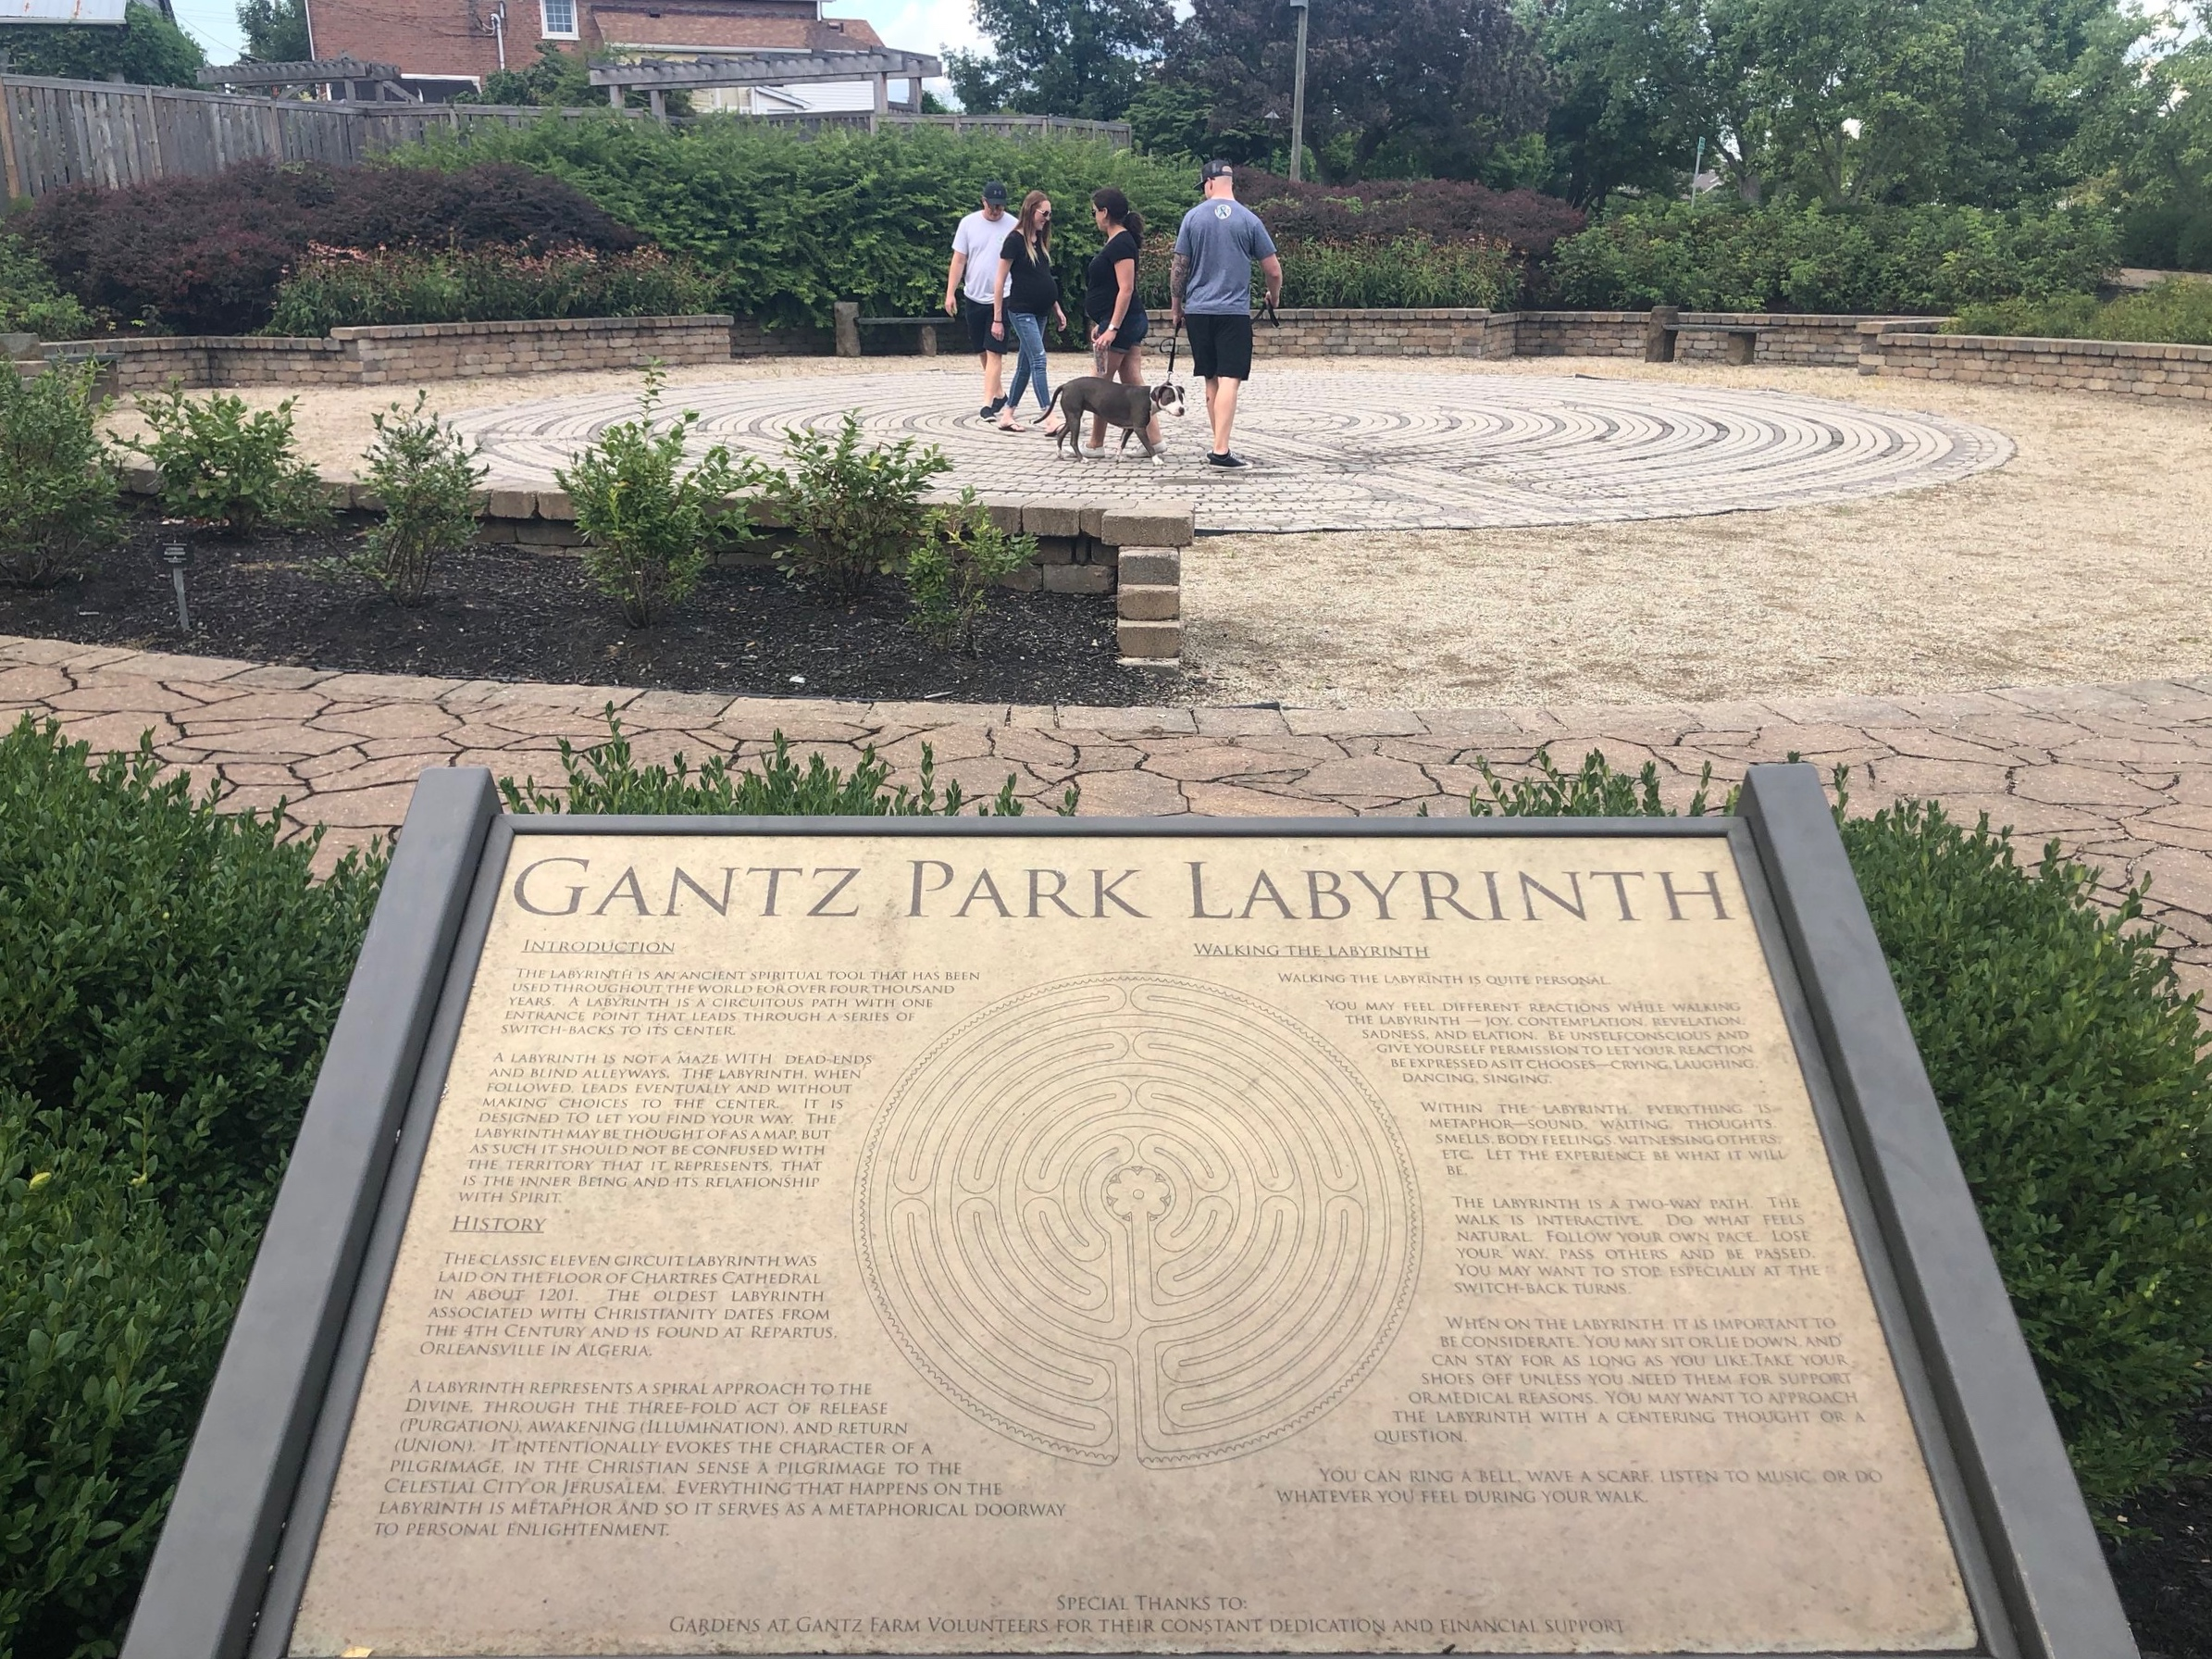 Walking the labyrinth at Gantz Park in Grove City